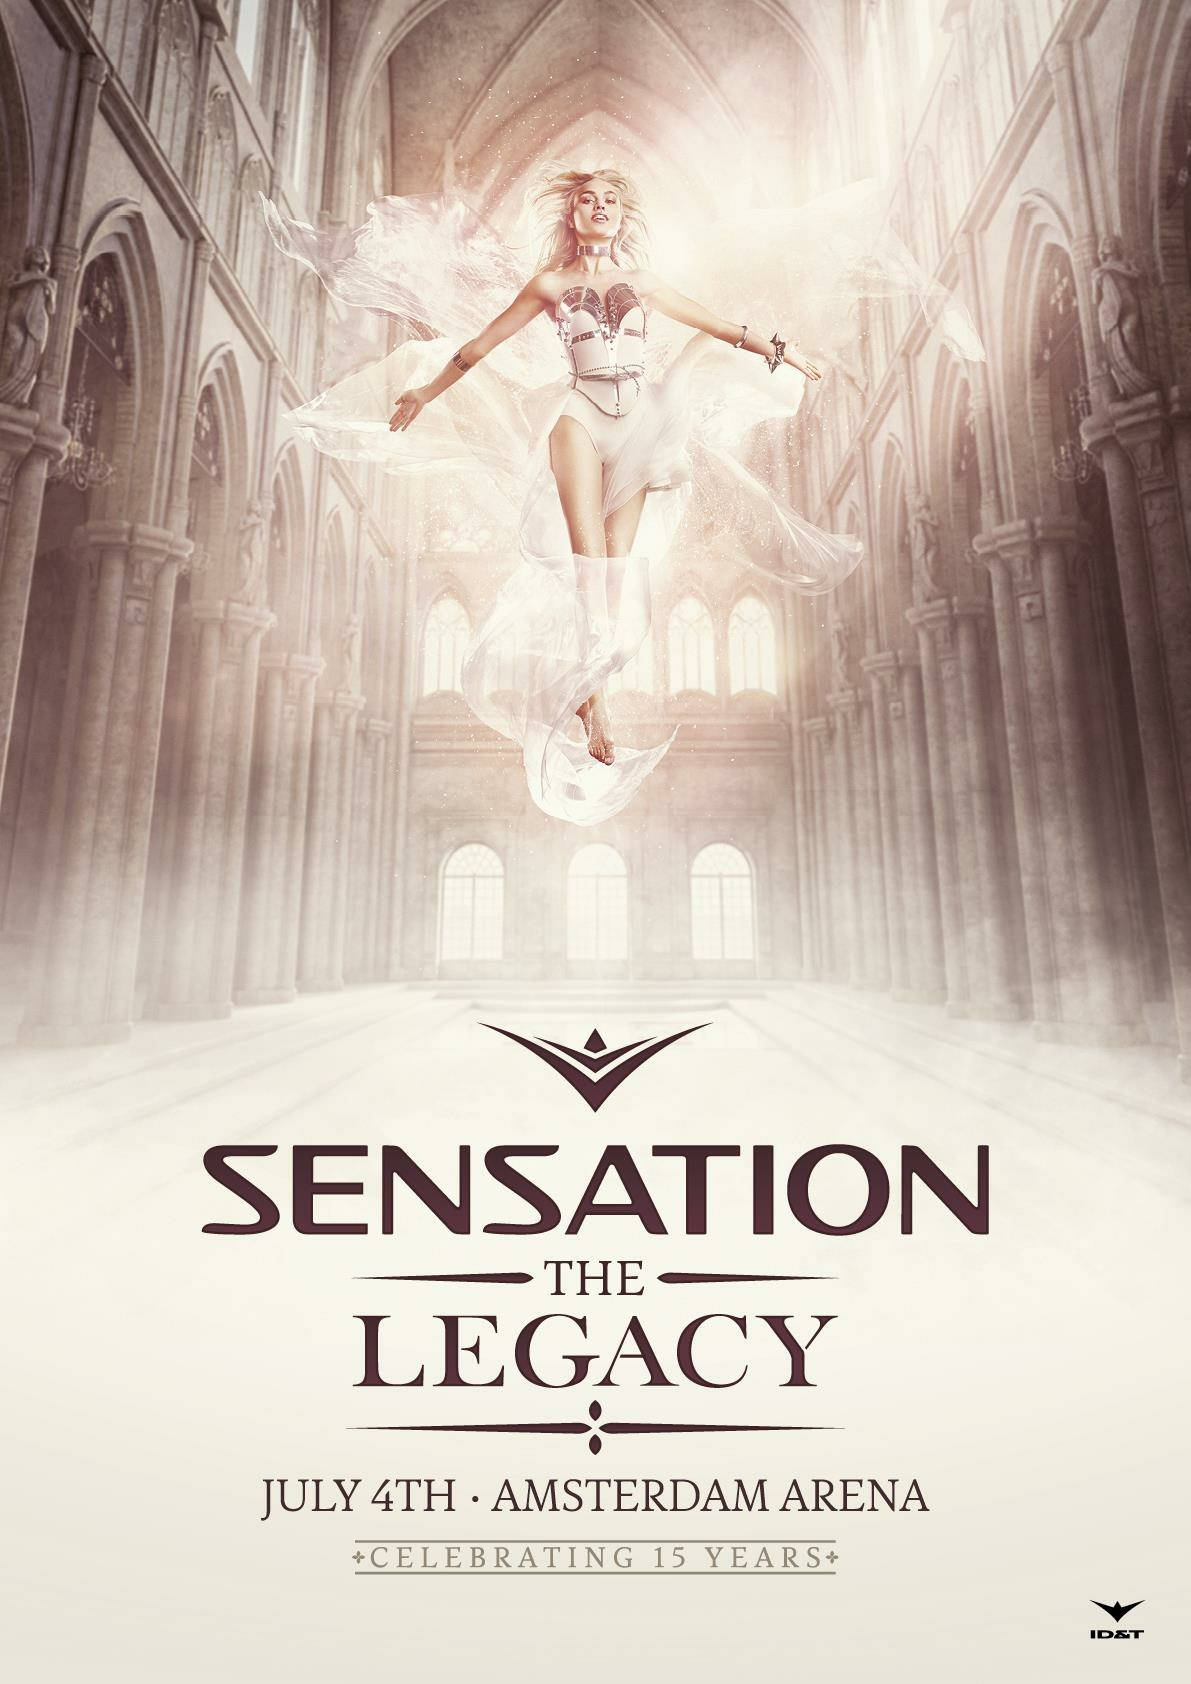 cyberfactory 2015 sensation the legacy arena amsterdam nederland